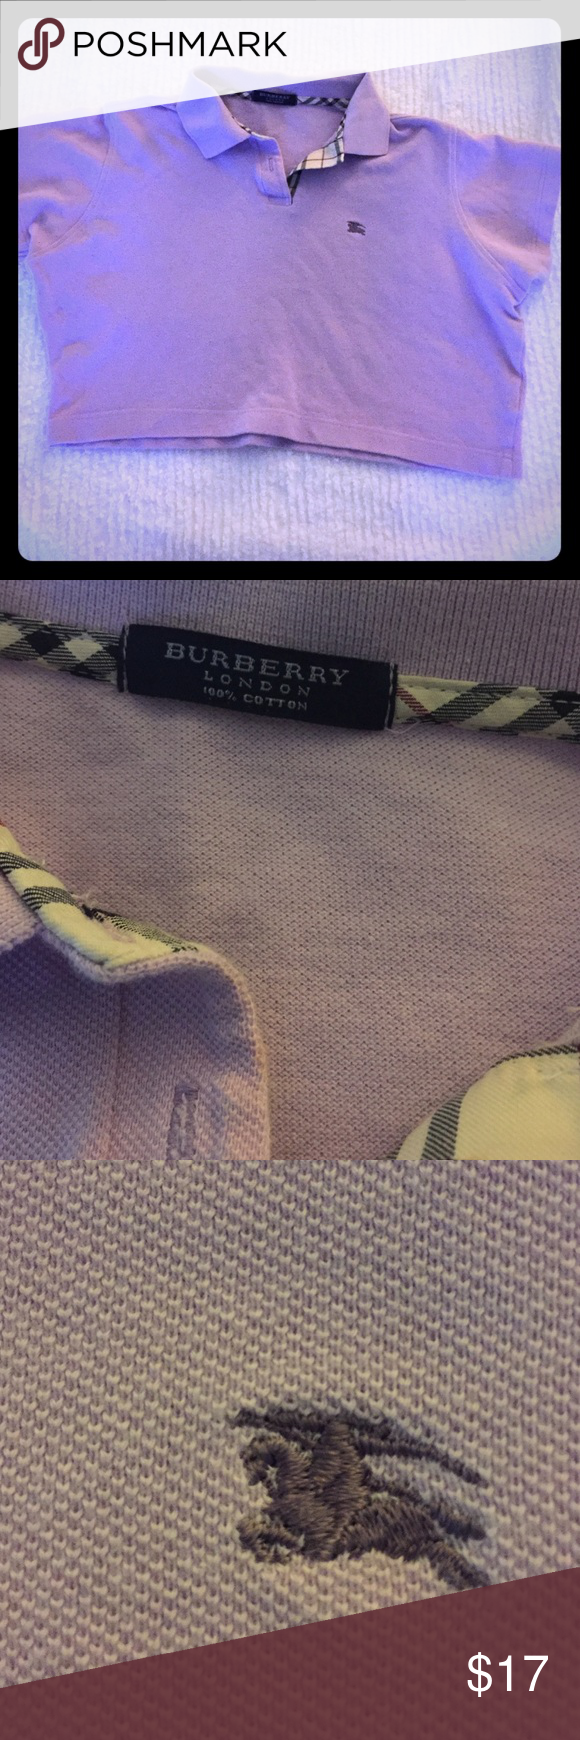 Burberry CROPPED polo style top Small Burberry CROPPED polo style top.  100% cotton lavender and worn once.   Signature Burberry plaid trim along the collar. Burberry Tops Crop Tops